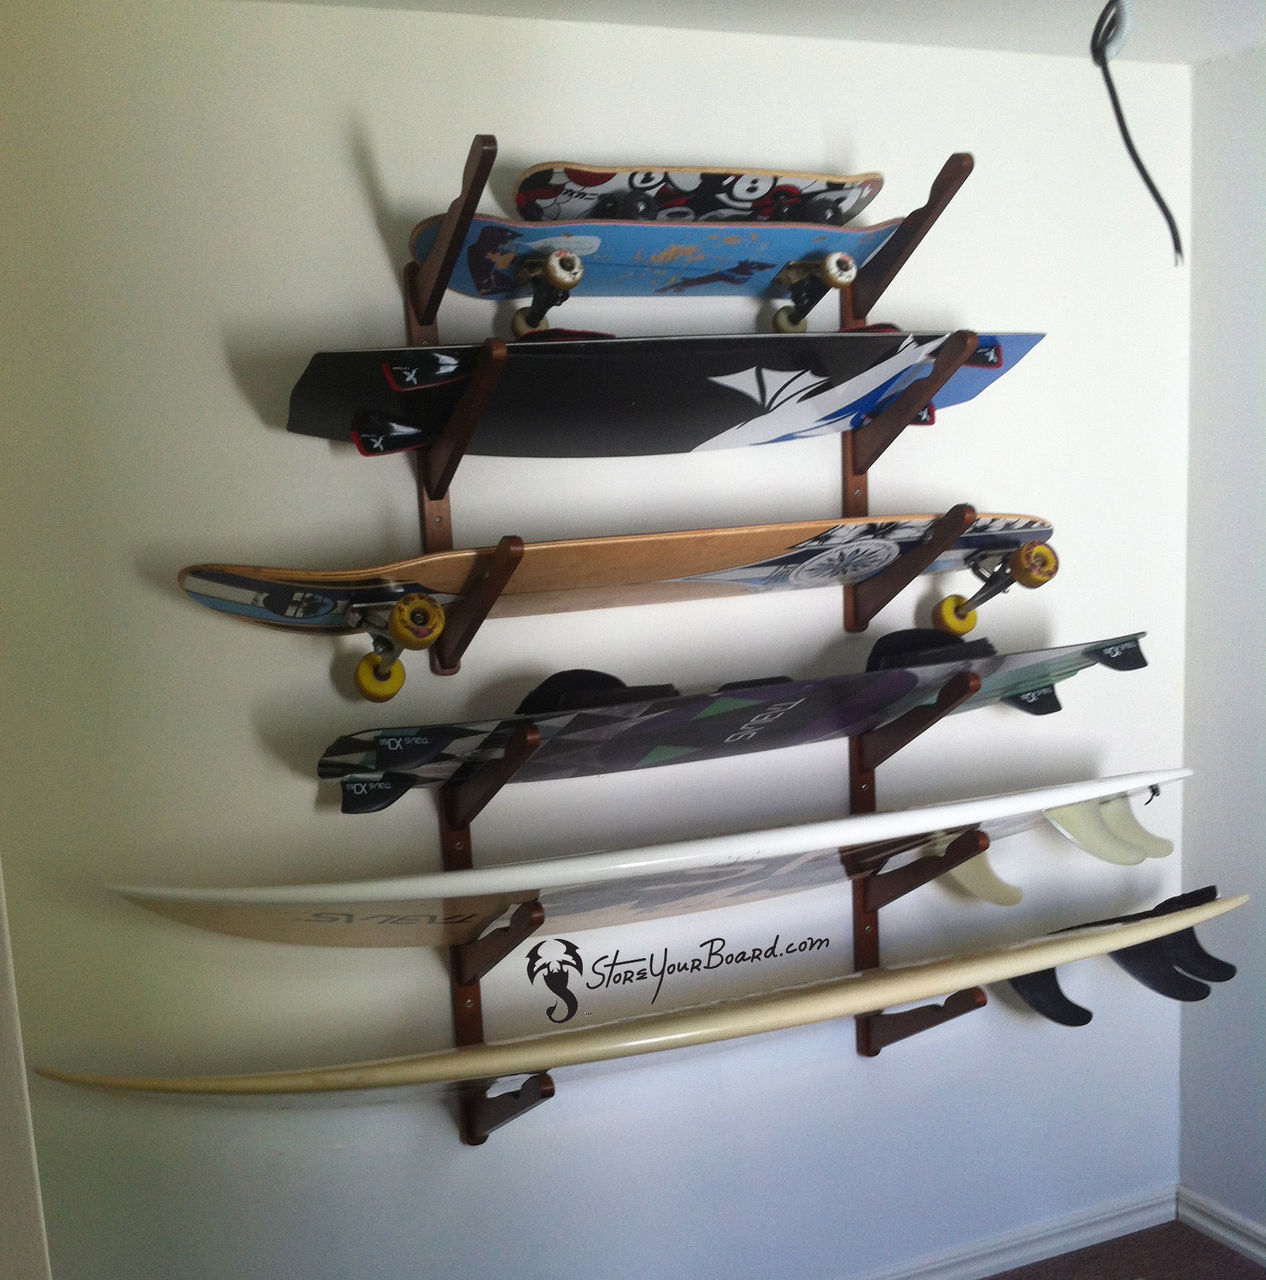 triple wakeboard storage rack & Triple Wakeboard Home Storage Rack - StoreYourBoard.com